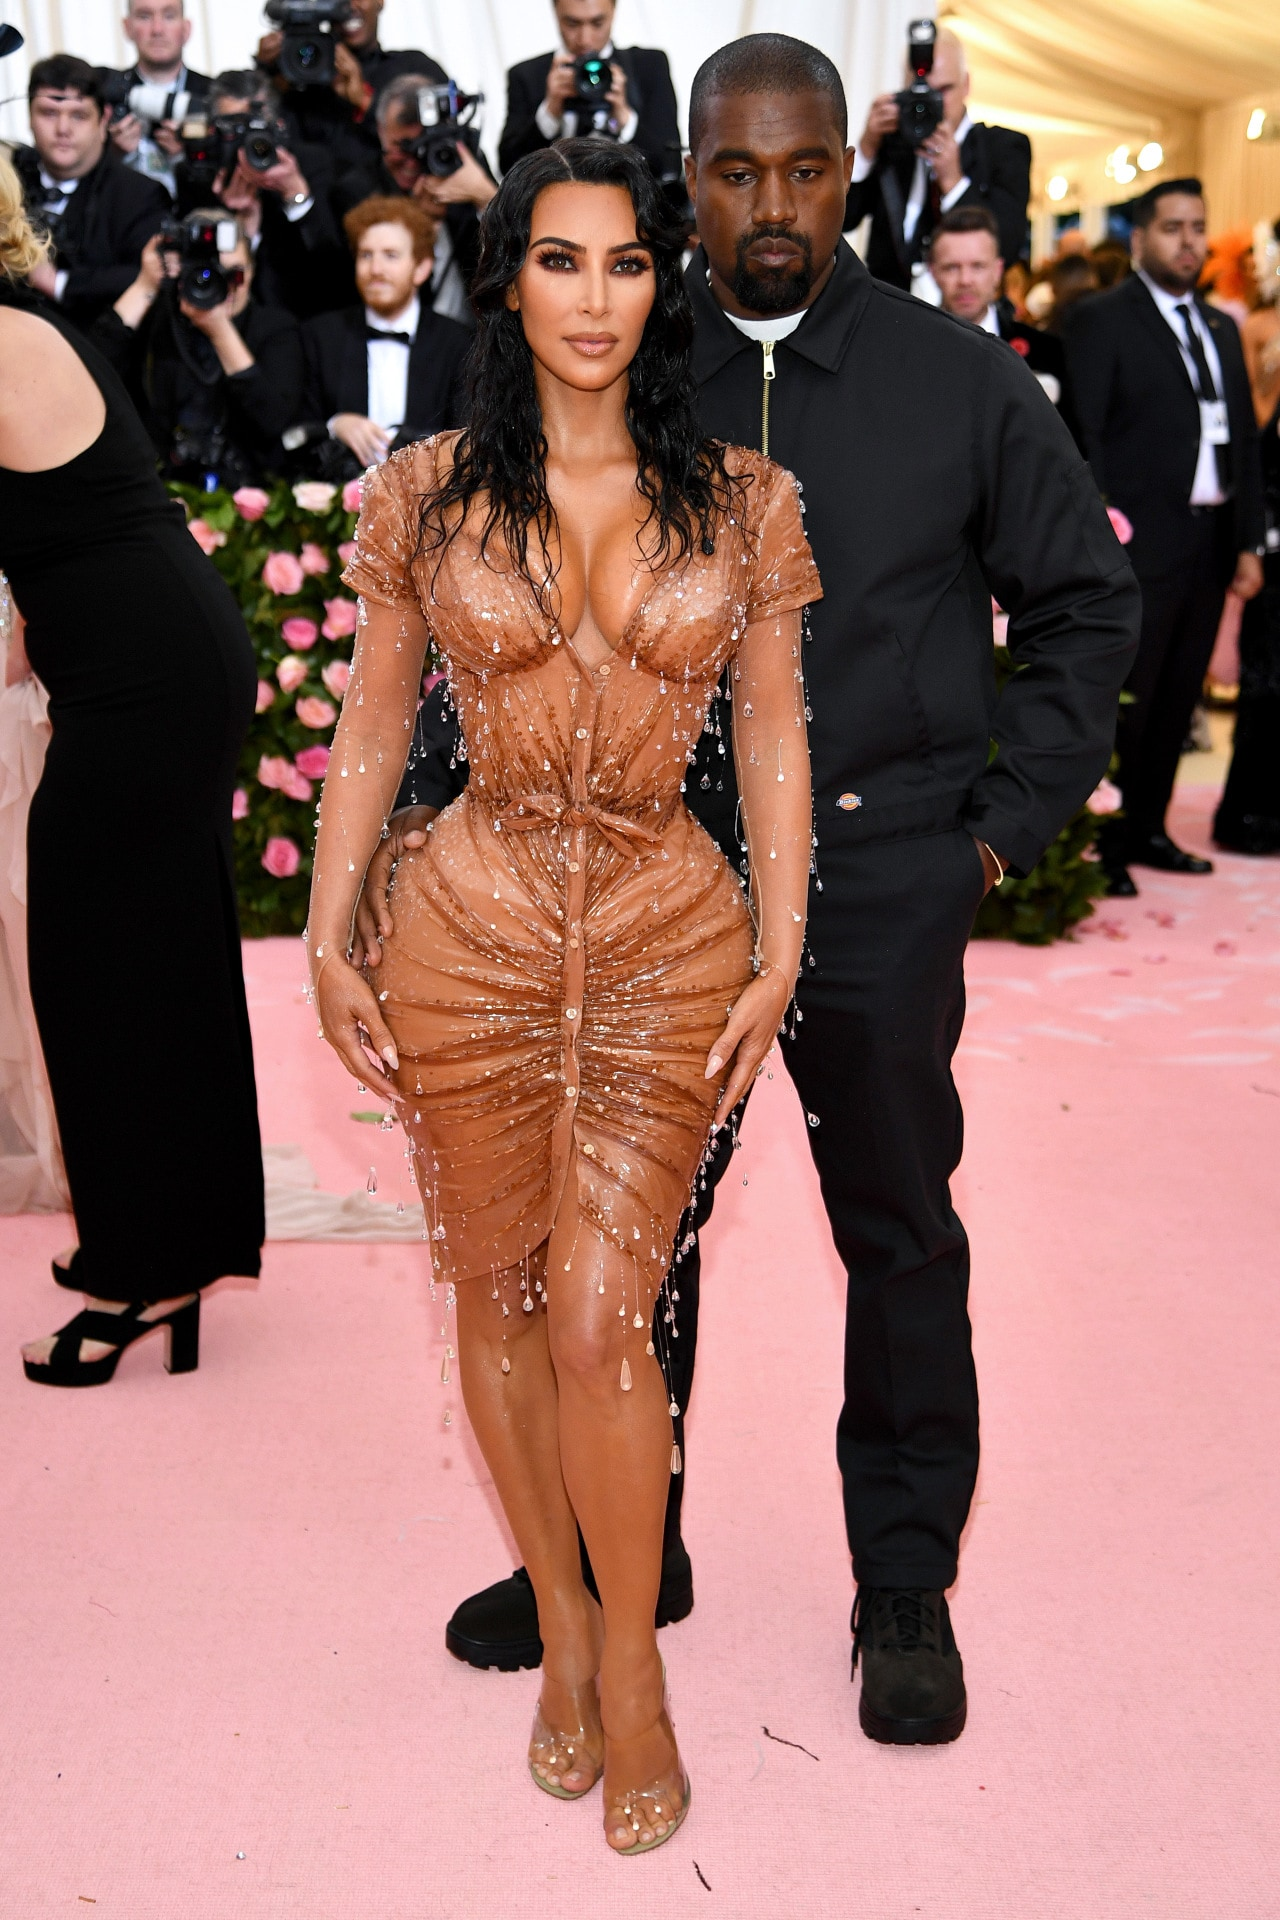 Kim Kardashian and Kanye West attend the 2019 Met Gala at the Metropolitan Museum of Art on May 06, 2019 in New York City.